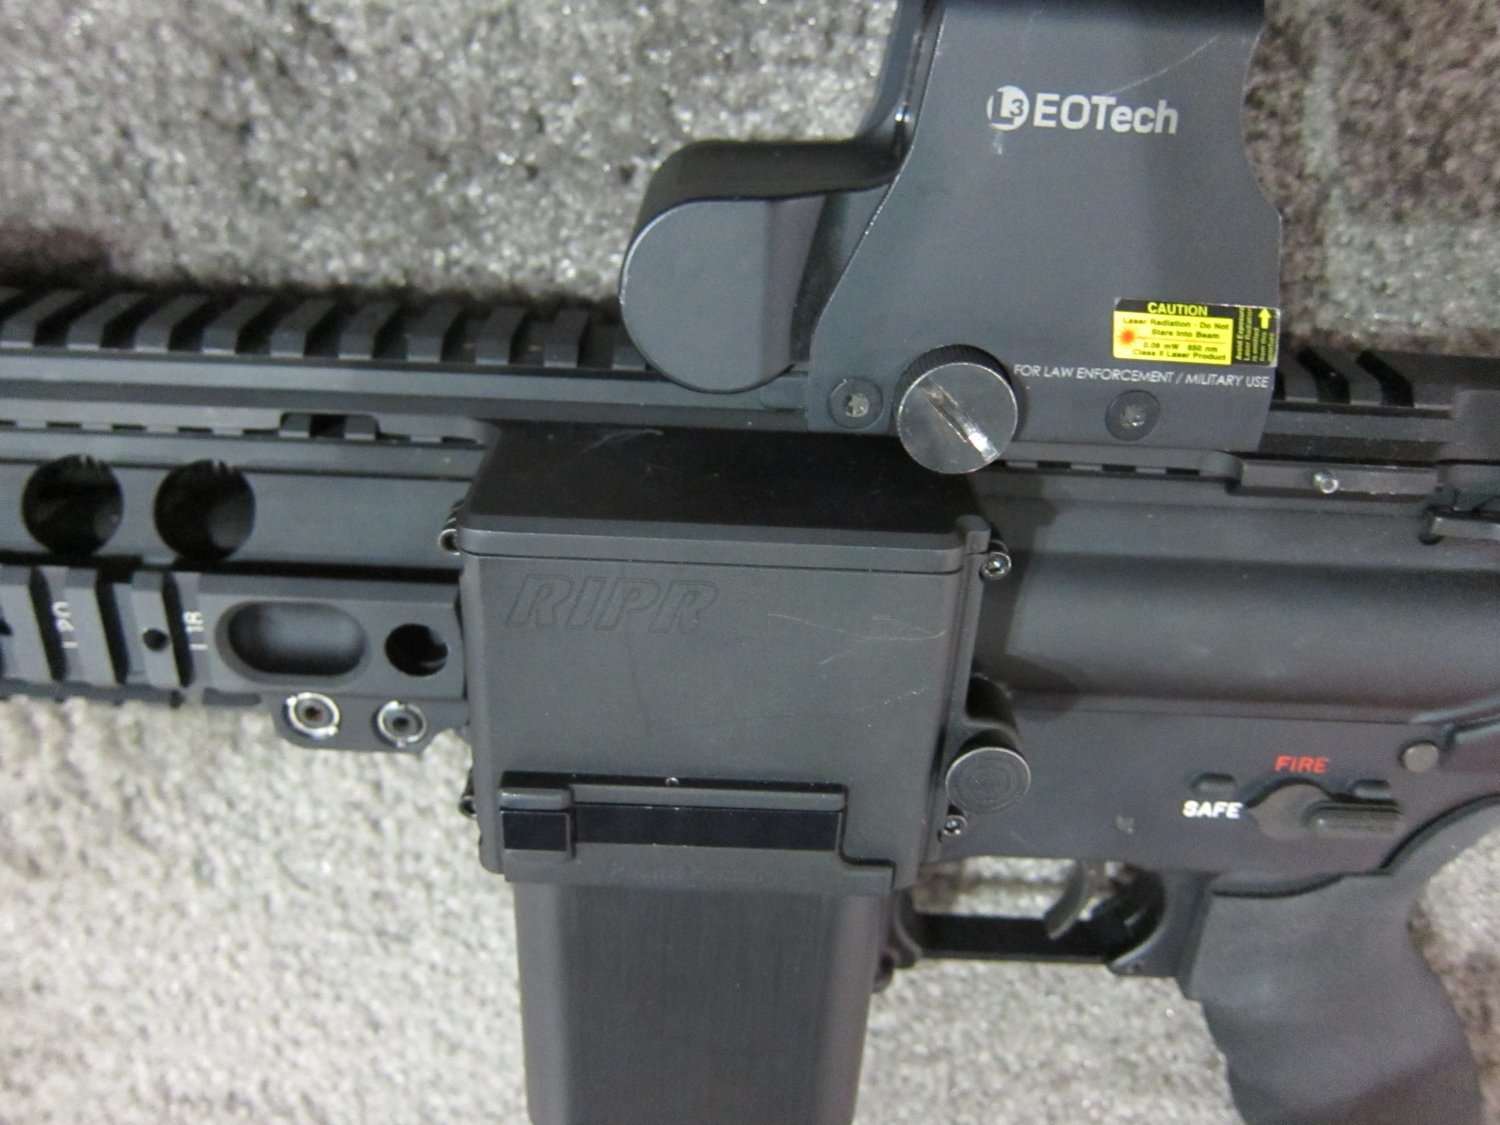 Reset RIPR Rifle Integrated Power Rail 5 <!  :en  >Reset RIPR (Rifle Integrated Power Rail): Central Power Source for Tactical AR Rifle/Carbine/SBR Accessories<!  :  >